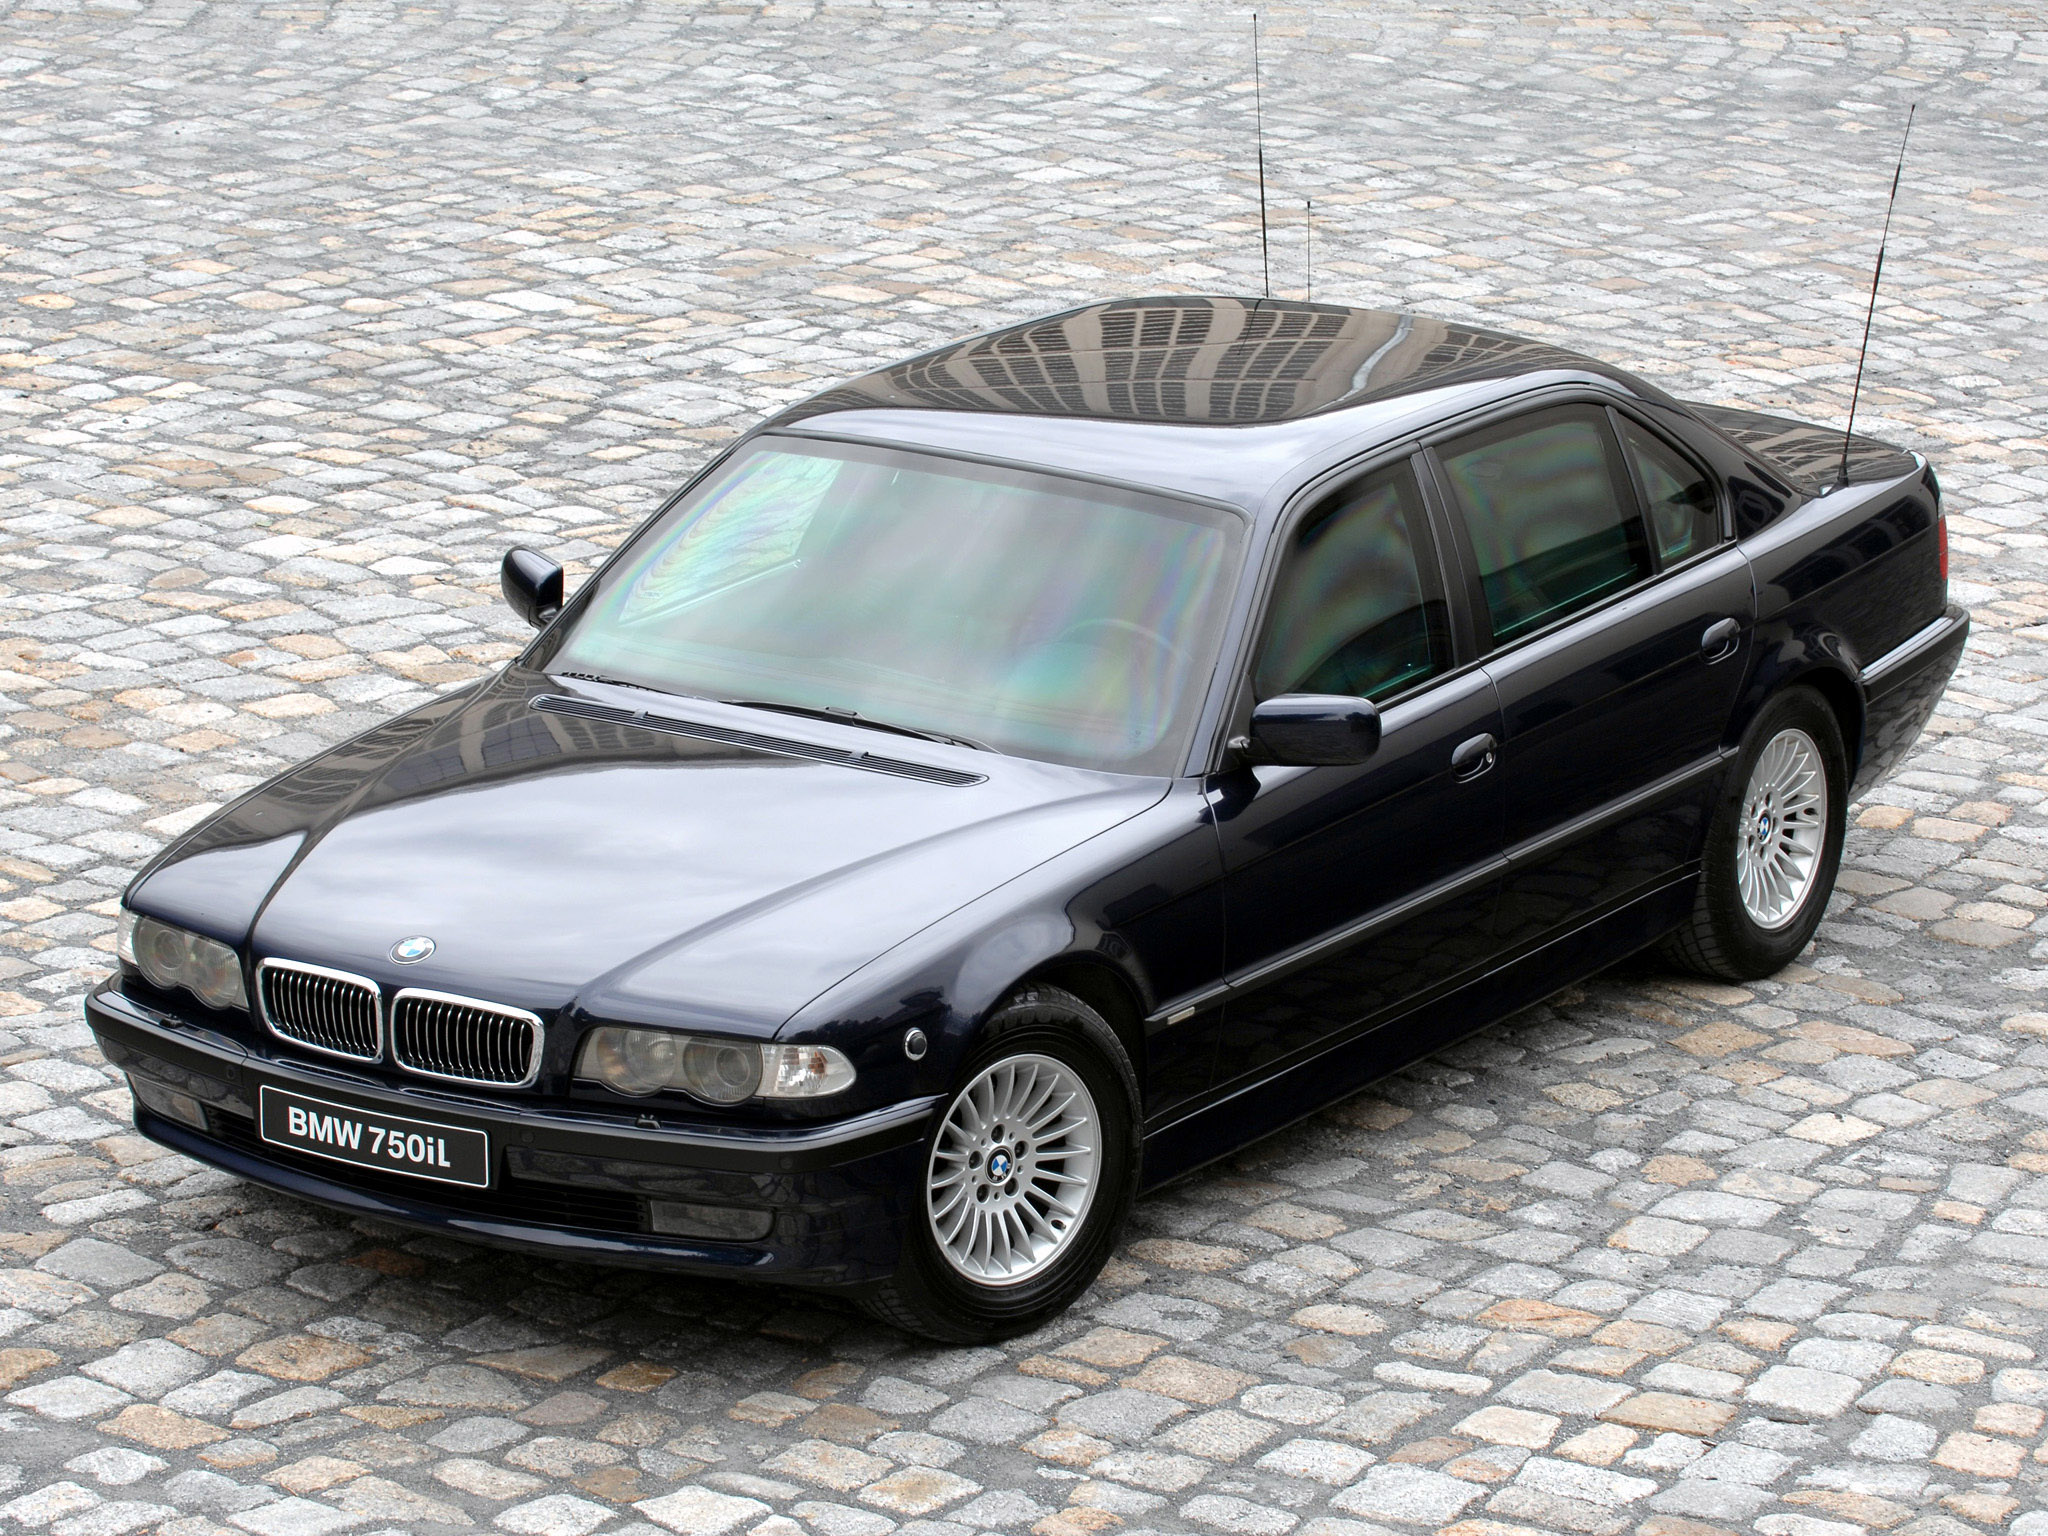 bmw 7 series 750il security e38 1998 2001 bmw 7 series. Black Bedroom Furniture Sets. Home Design Ideas